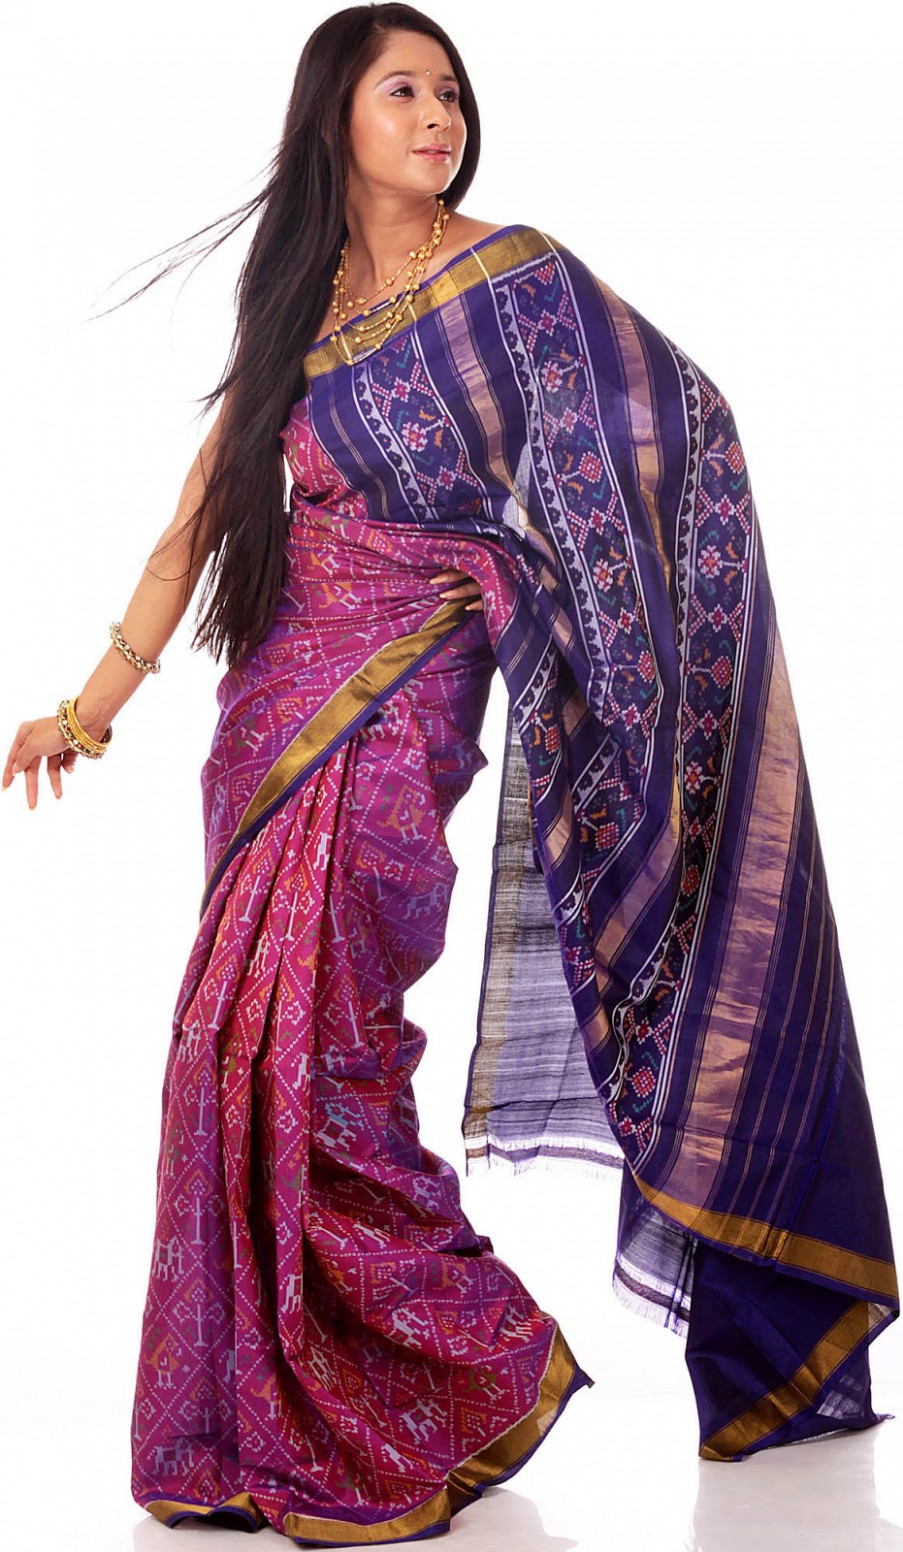 Patola SilK Saree: All About Hand-Woven Patola SilK Sarees